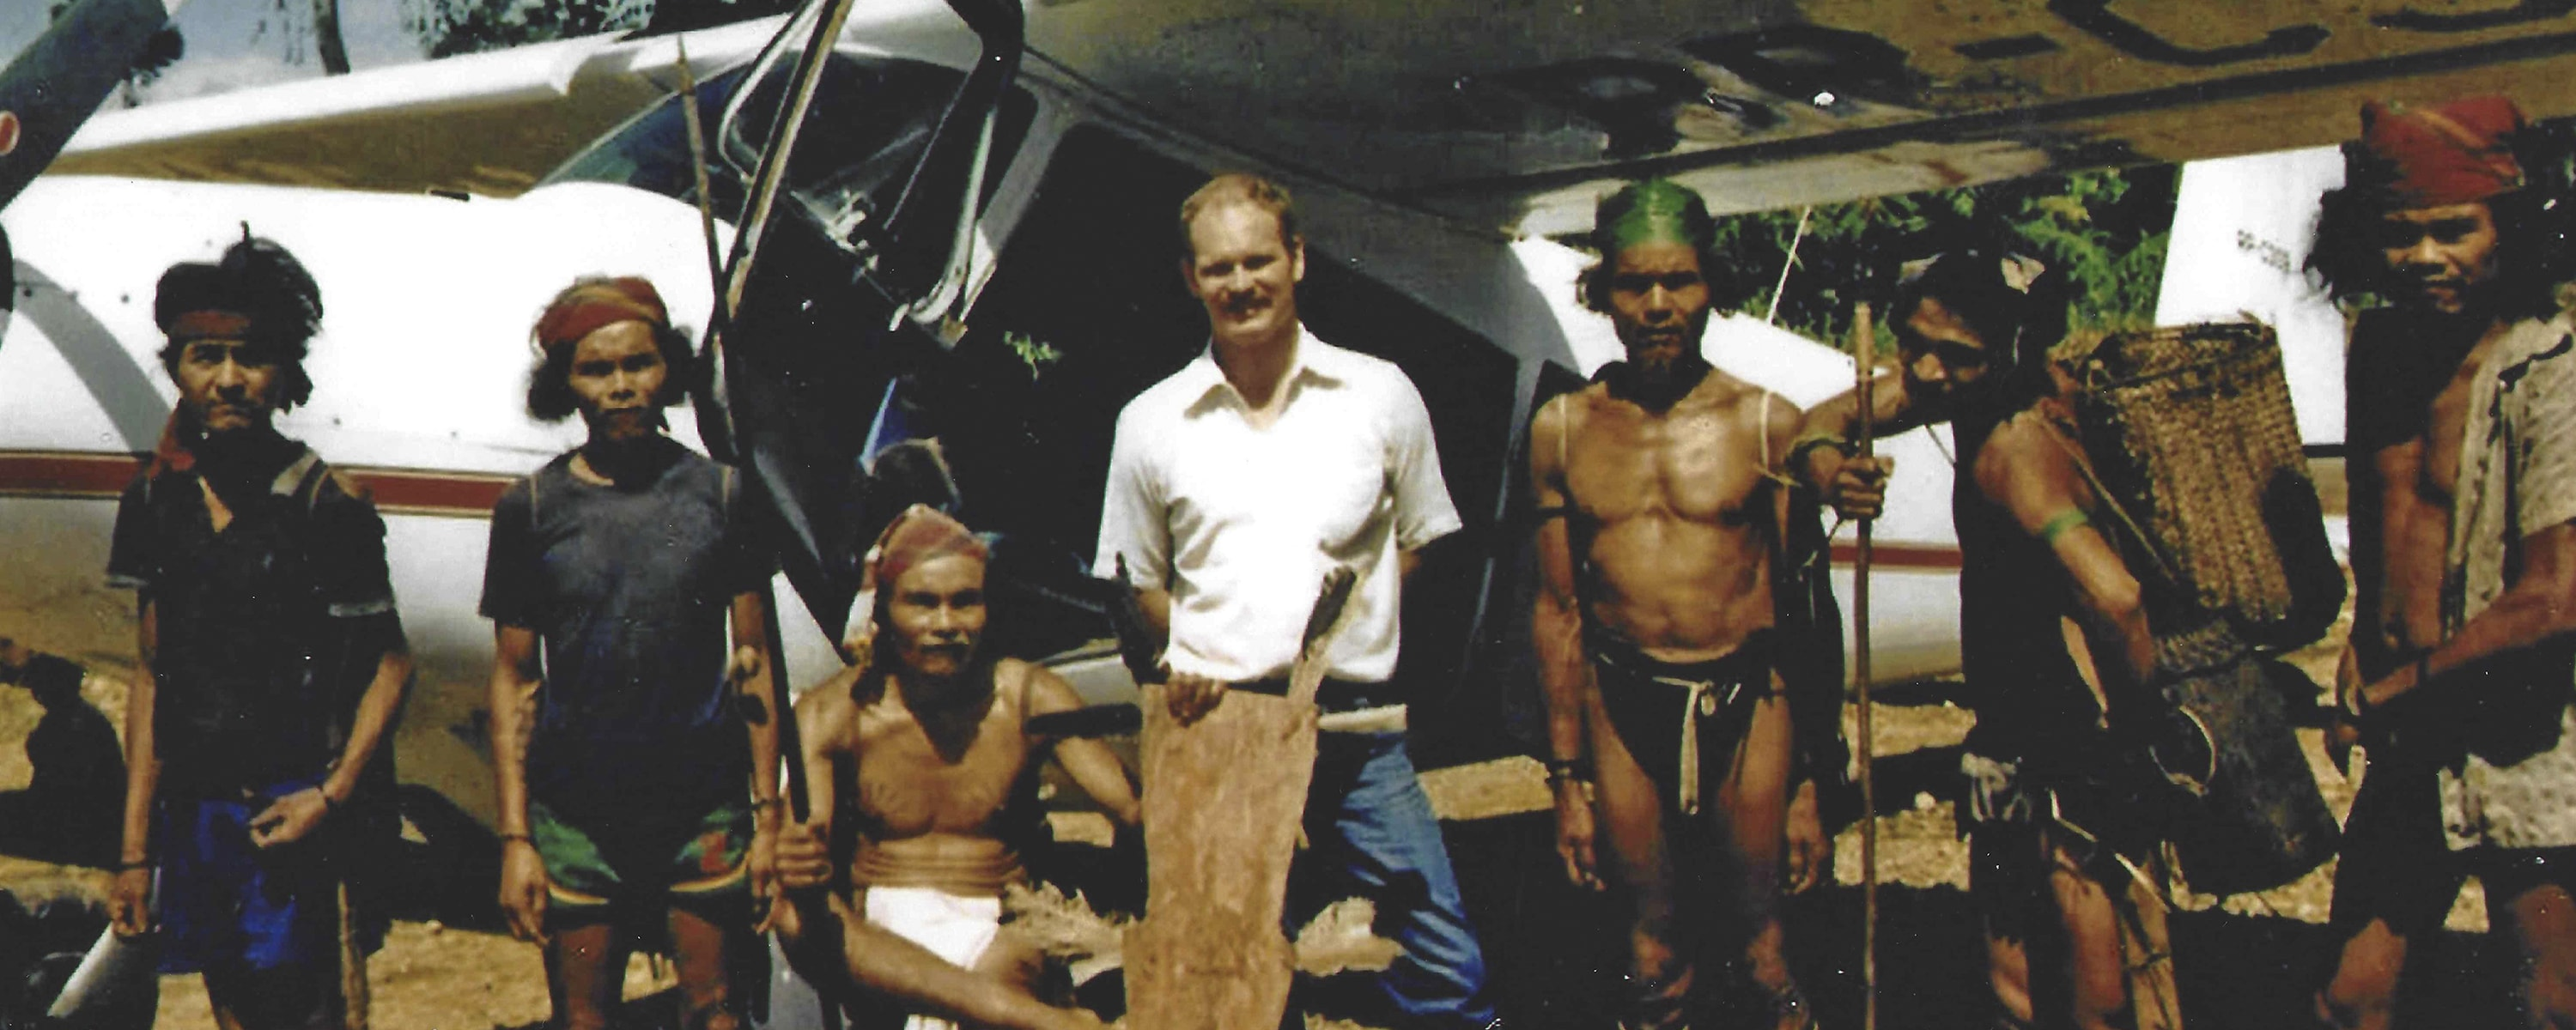 Martin Burnham, a jungle pilot, posing for a photo with the Tribes people